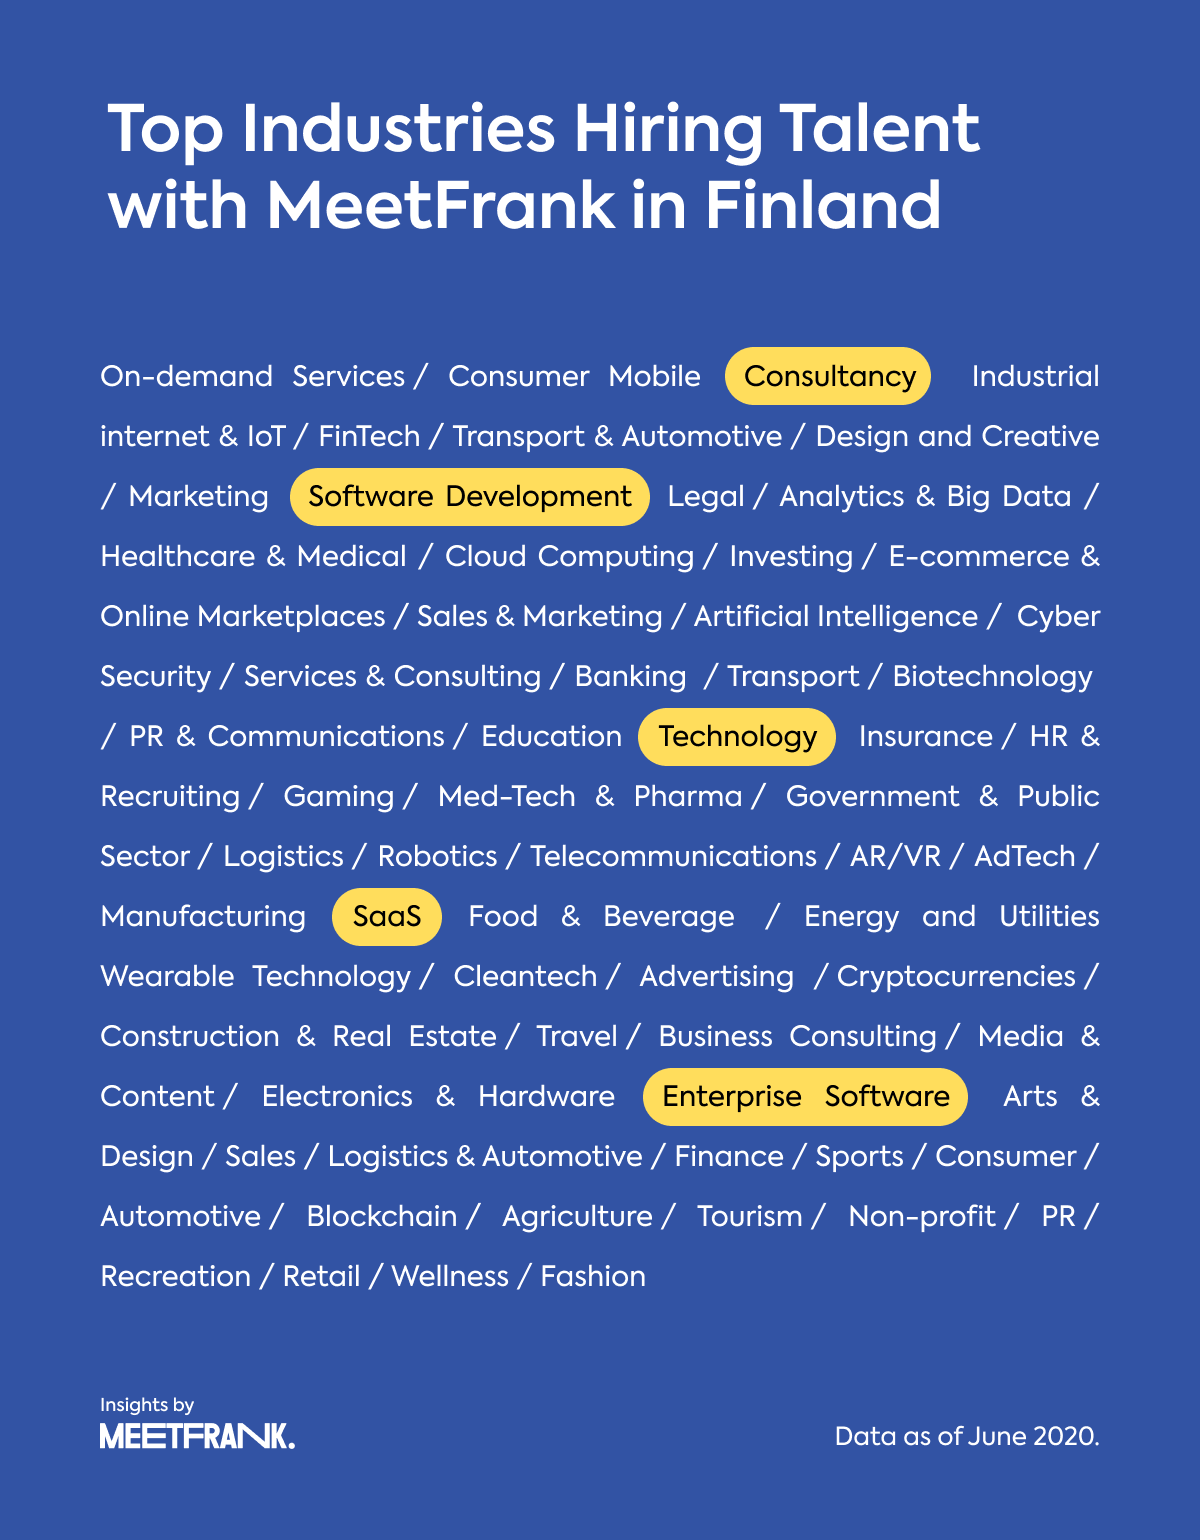 Finland-based company industries